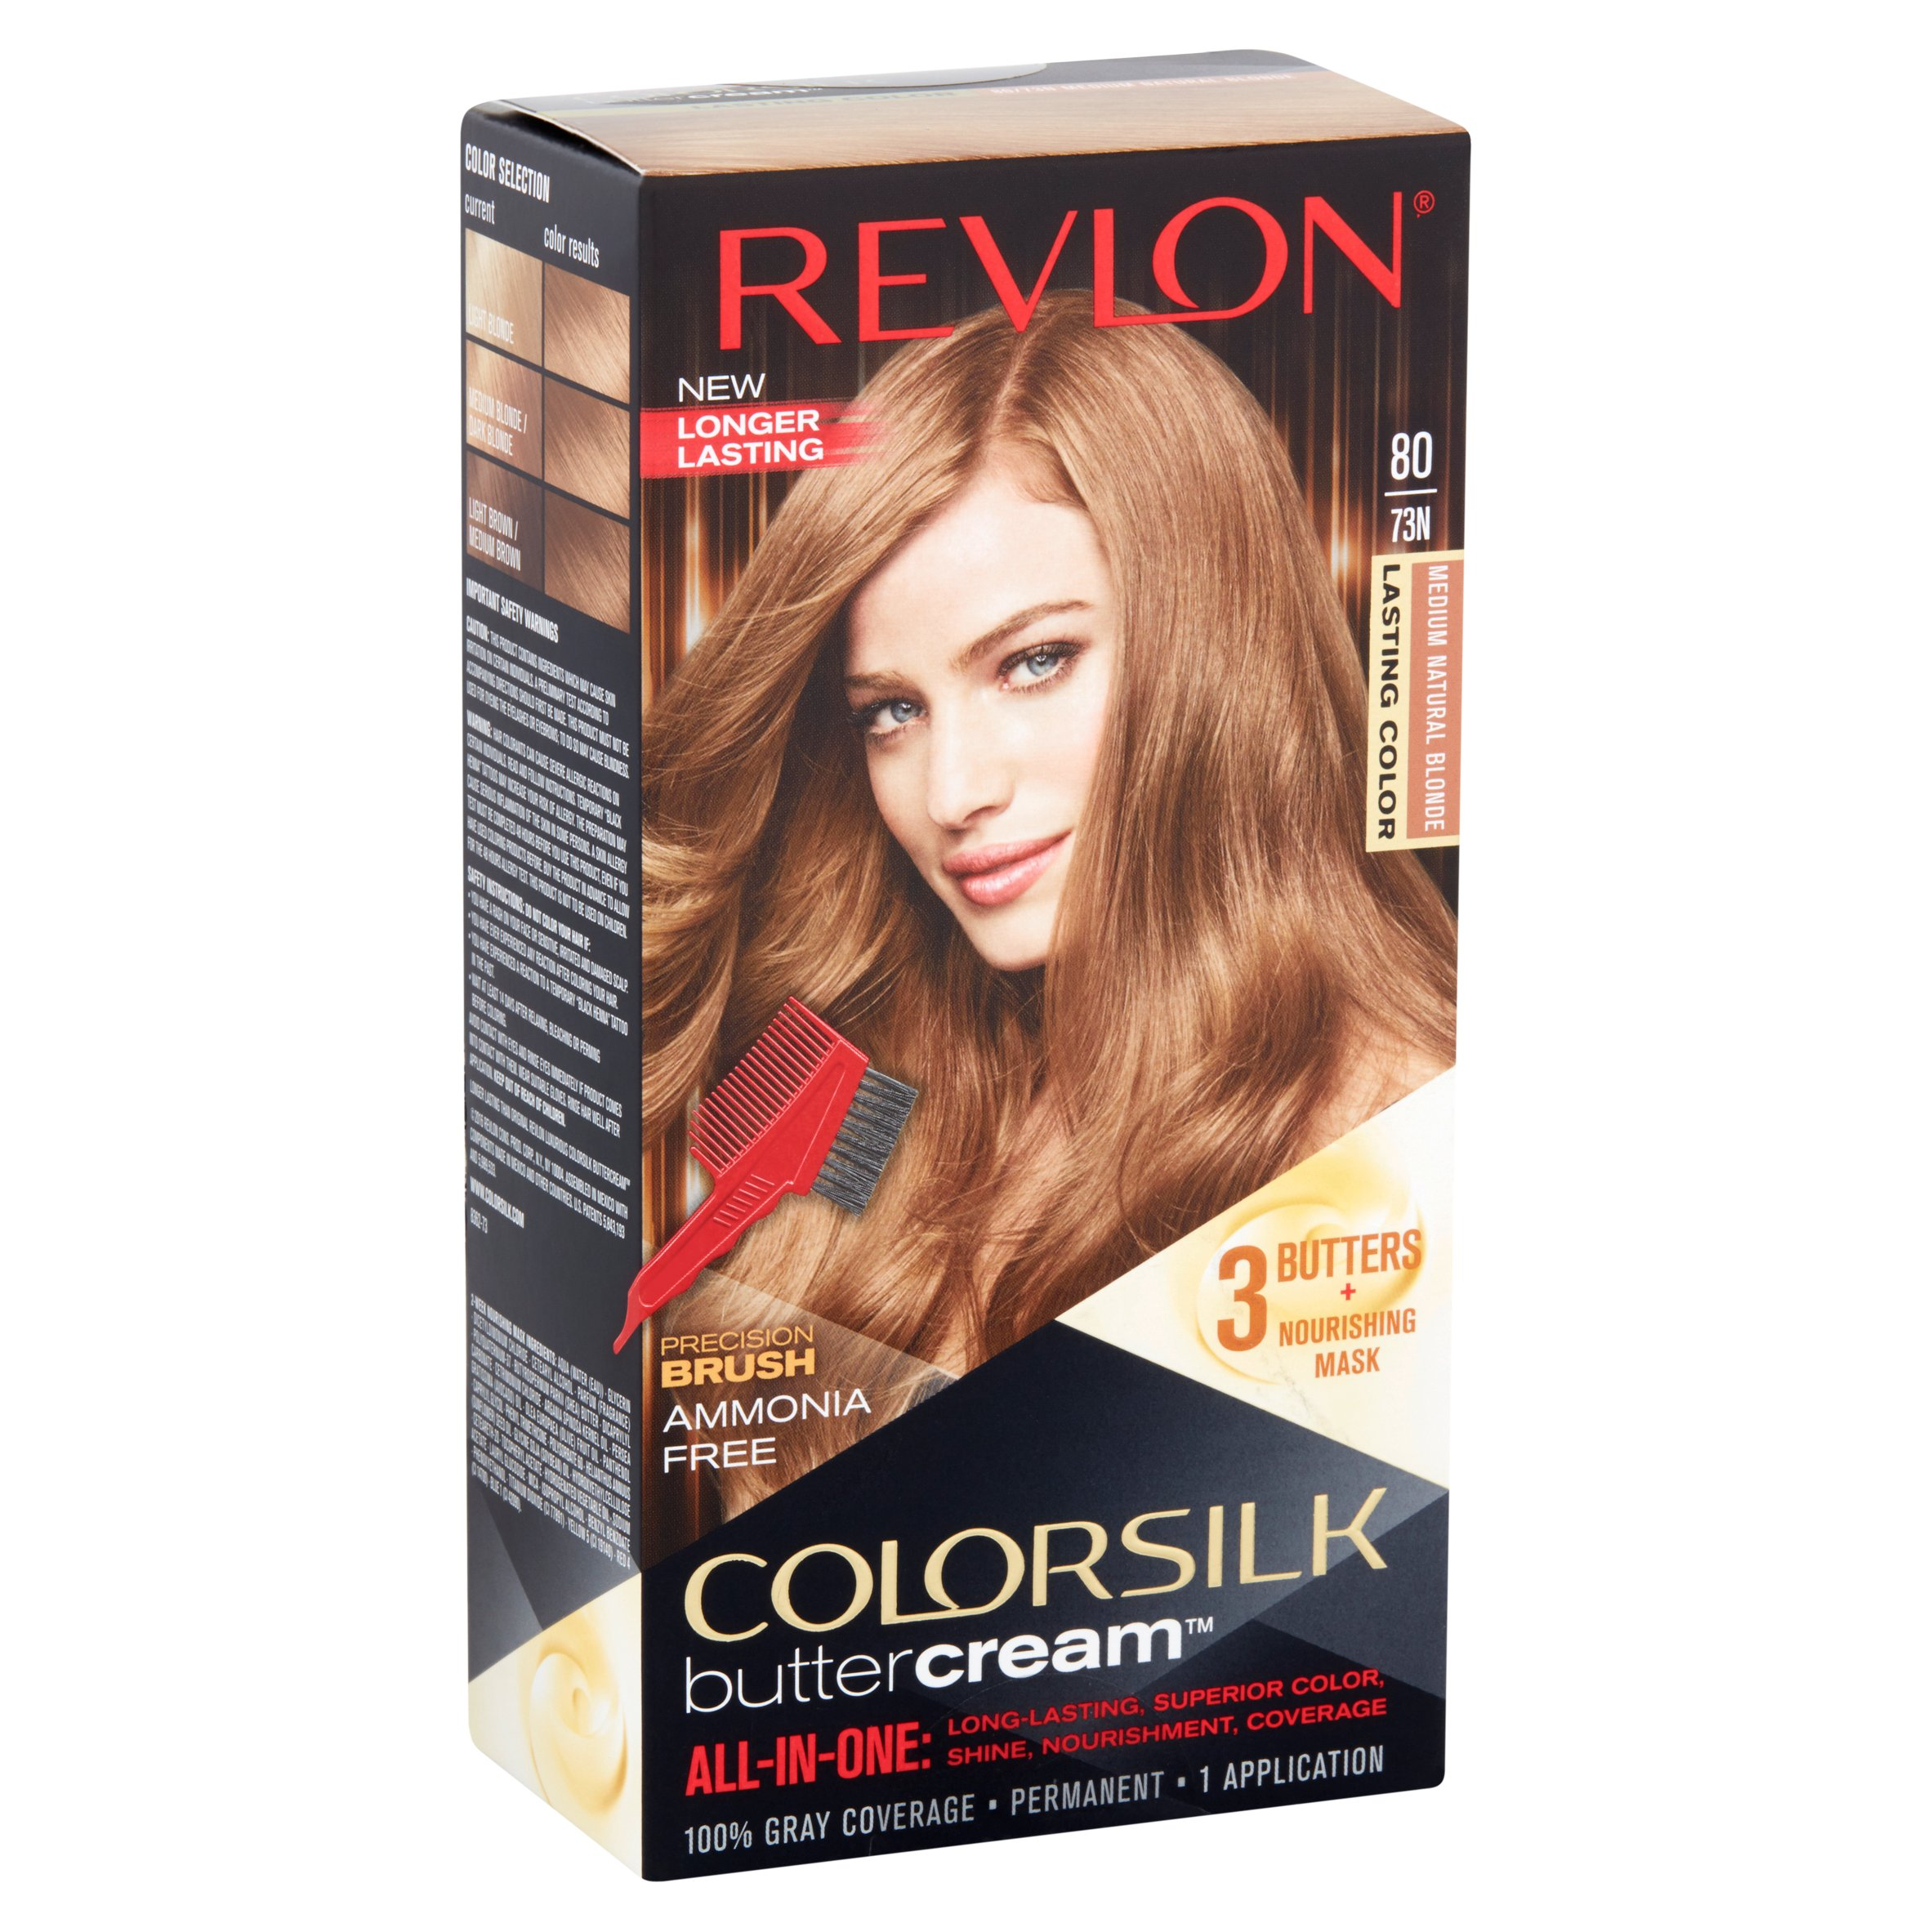 Revlon Colorsilk Buttercream Hair Color 53 Medium Golden Brown